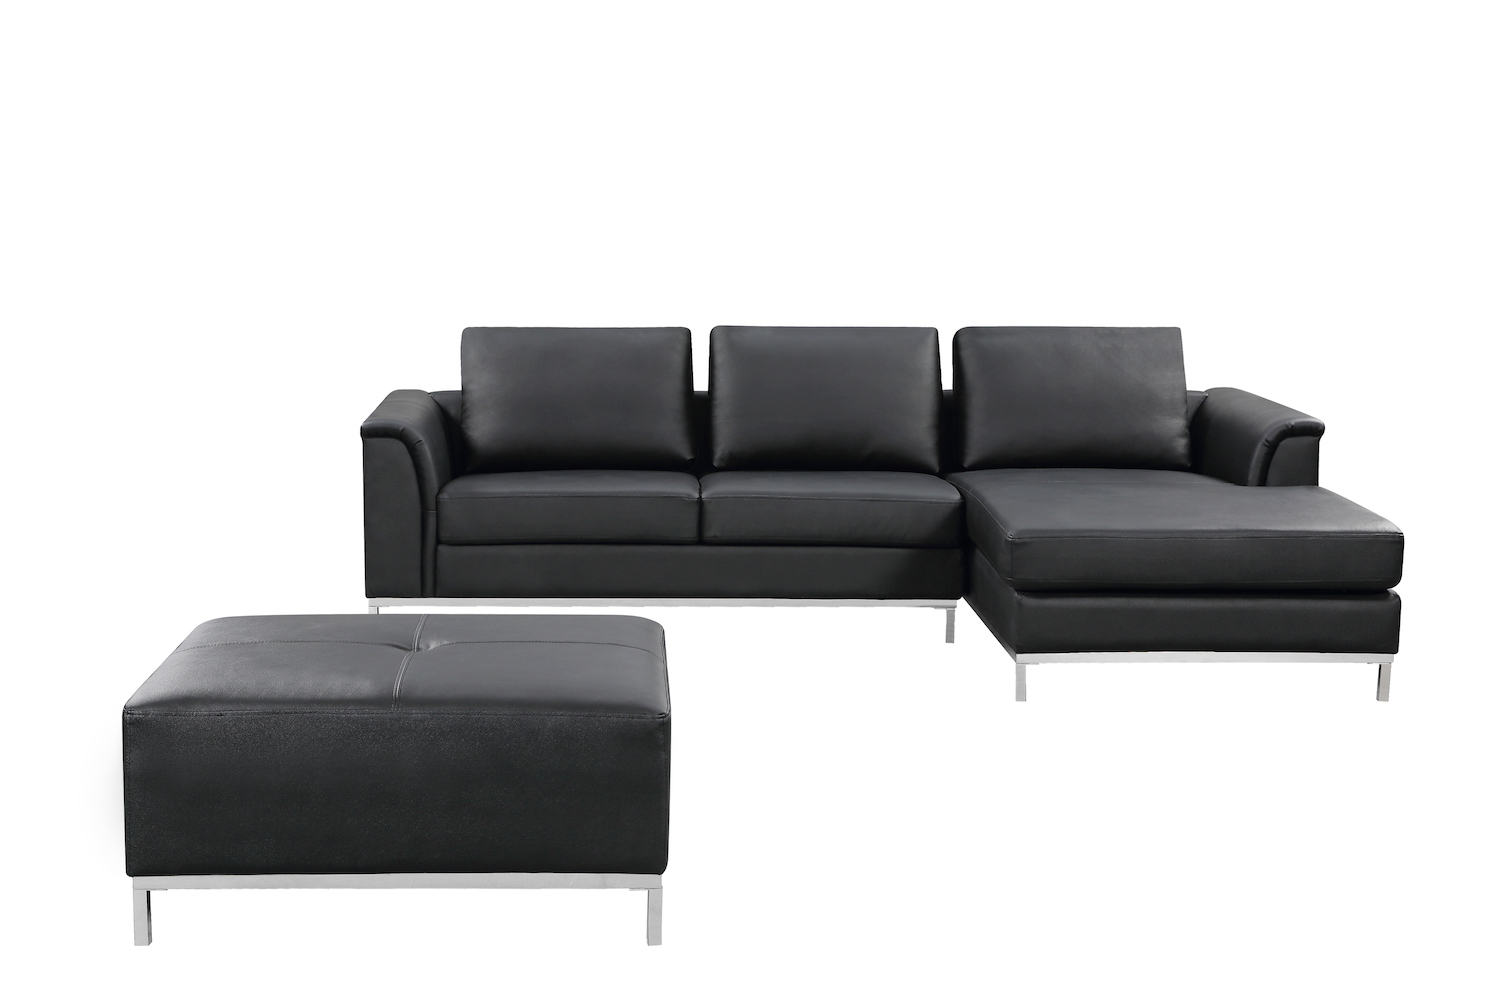 Black Right-Facing Leather Sectional Sofa - OLLON